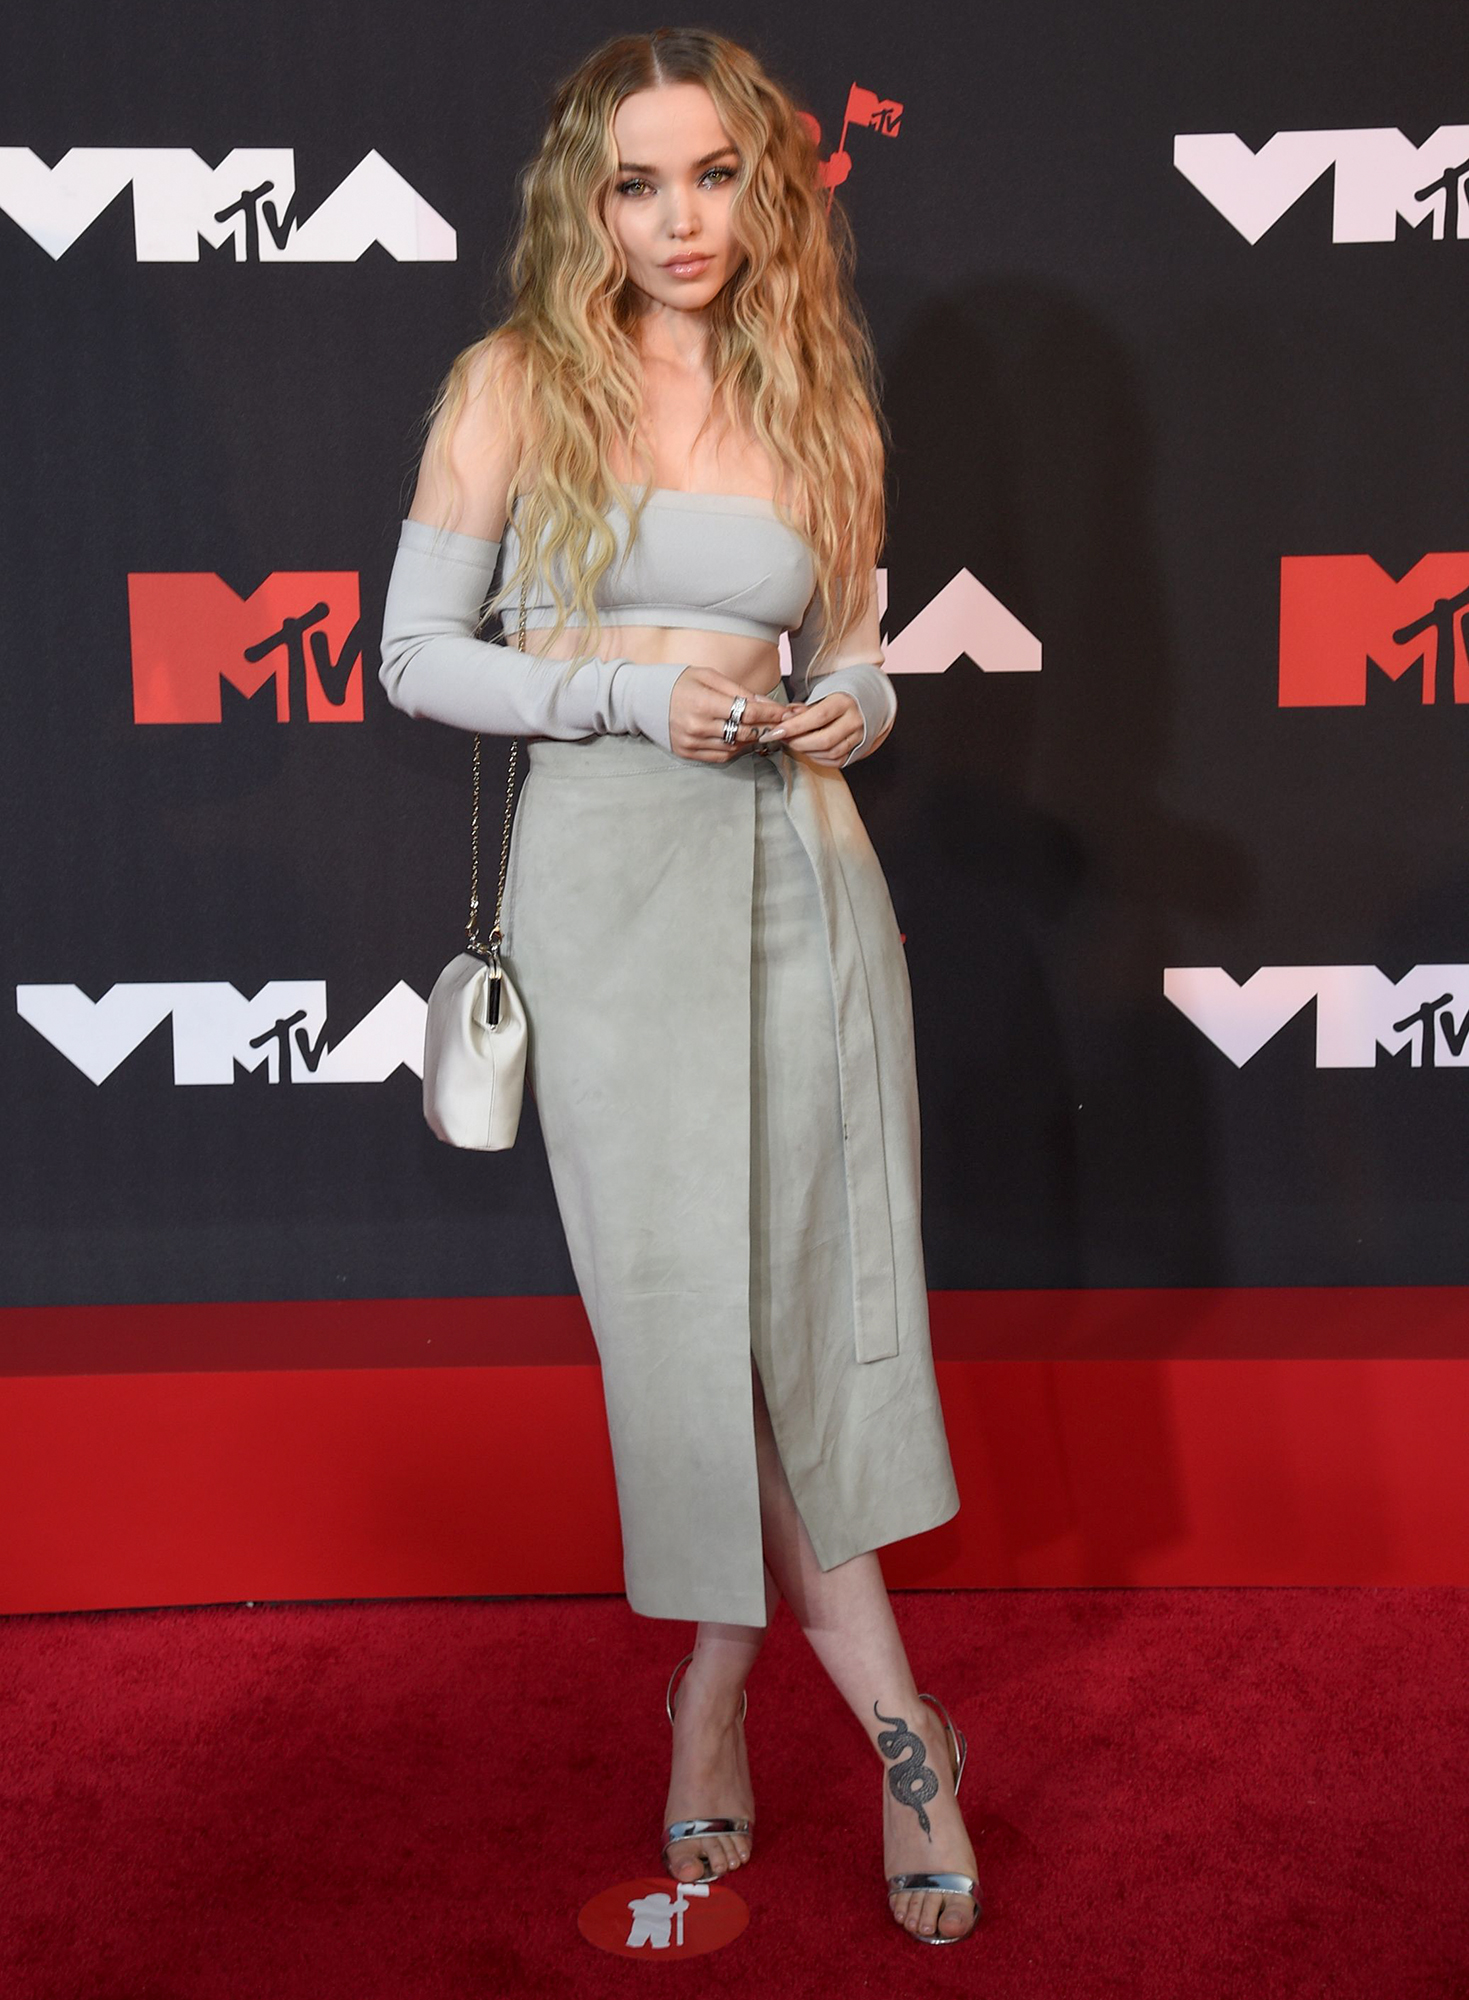 Dove Cameron arrives at the 2021 MTV Video Music Awards